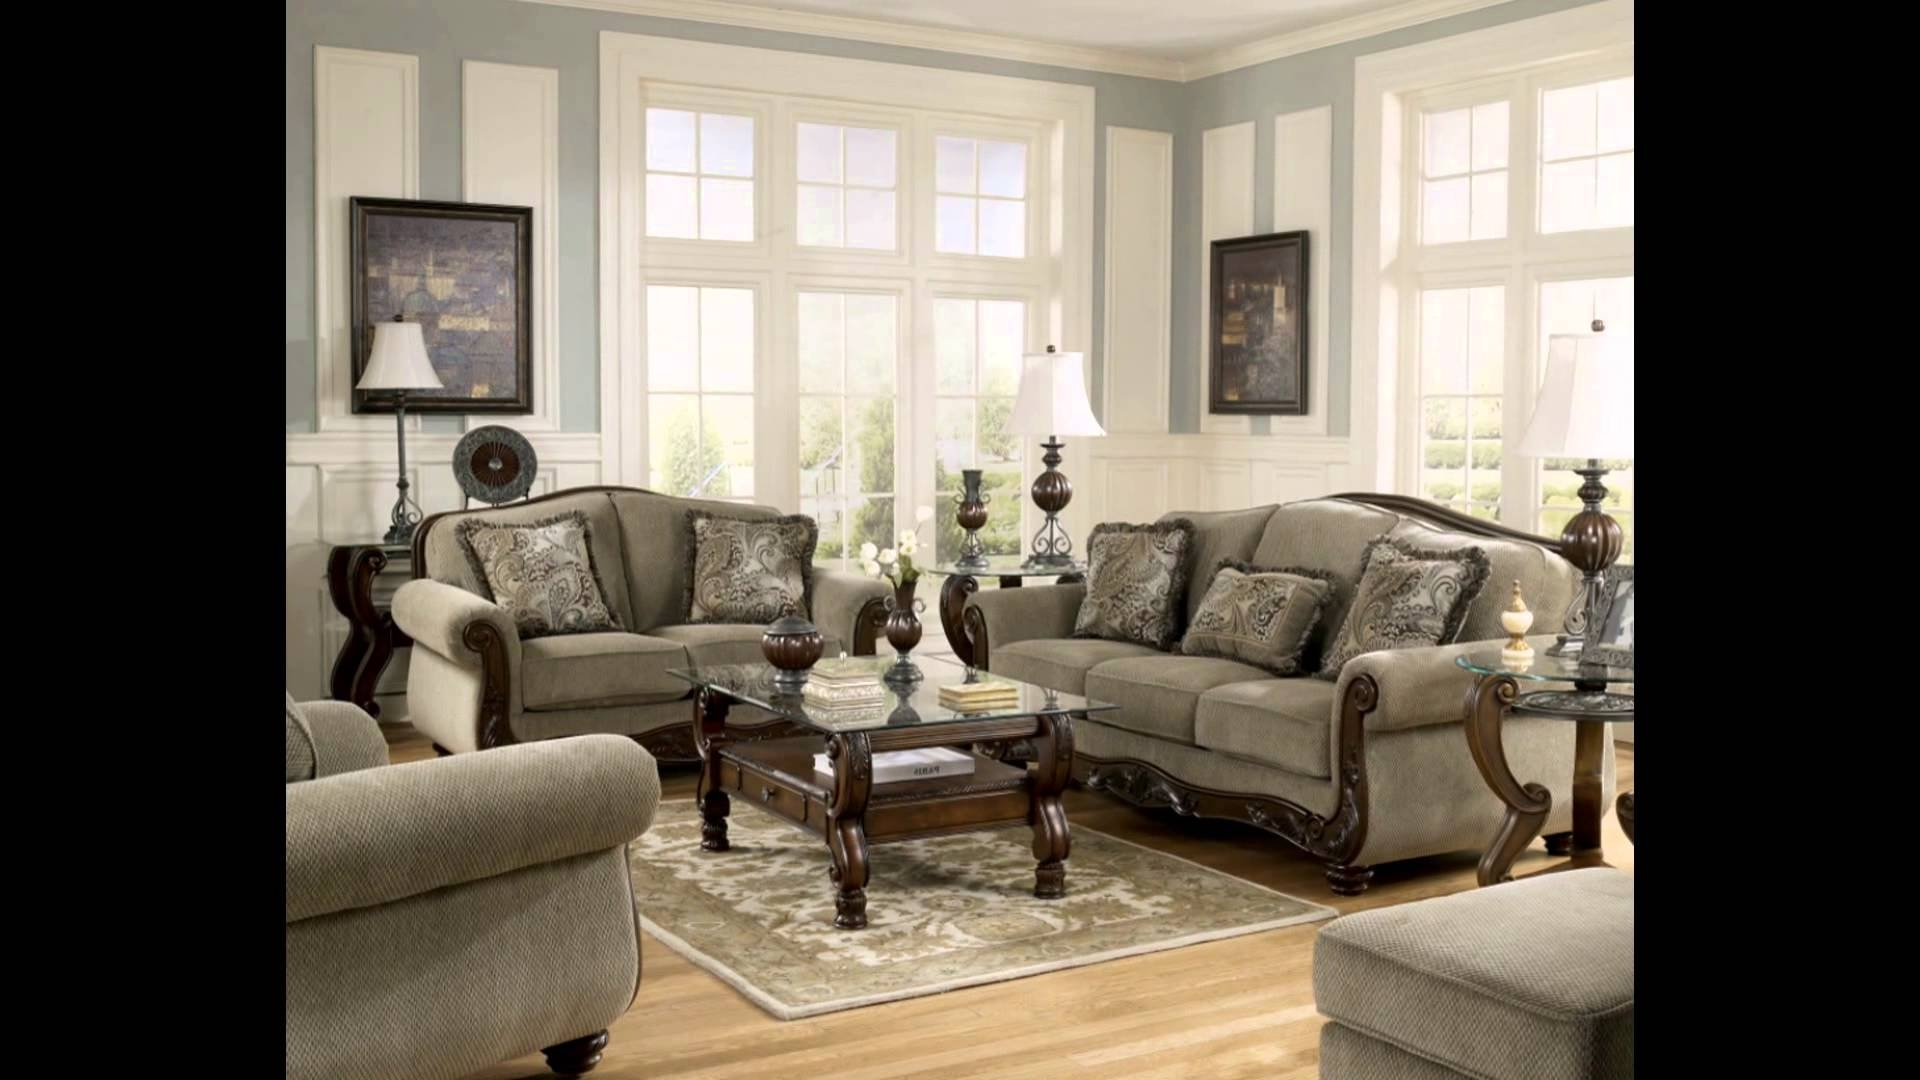 Ethan Allen Sofas And Chairs Within Well Known Ethan Allen Furniture – Youtube (View 8 of 15)